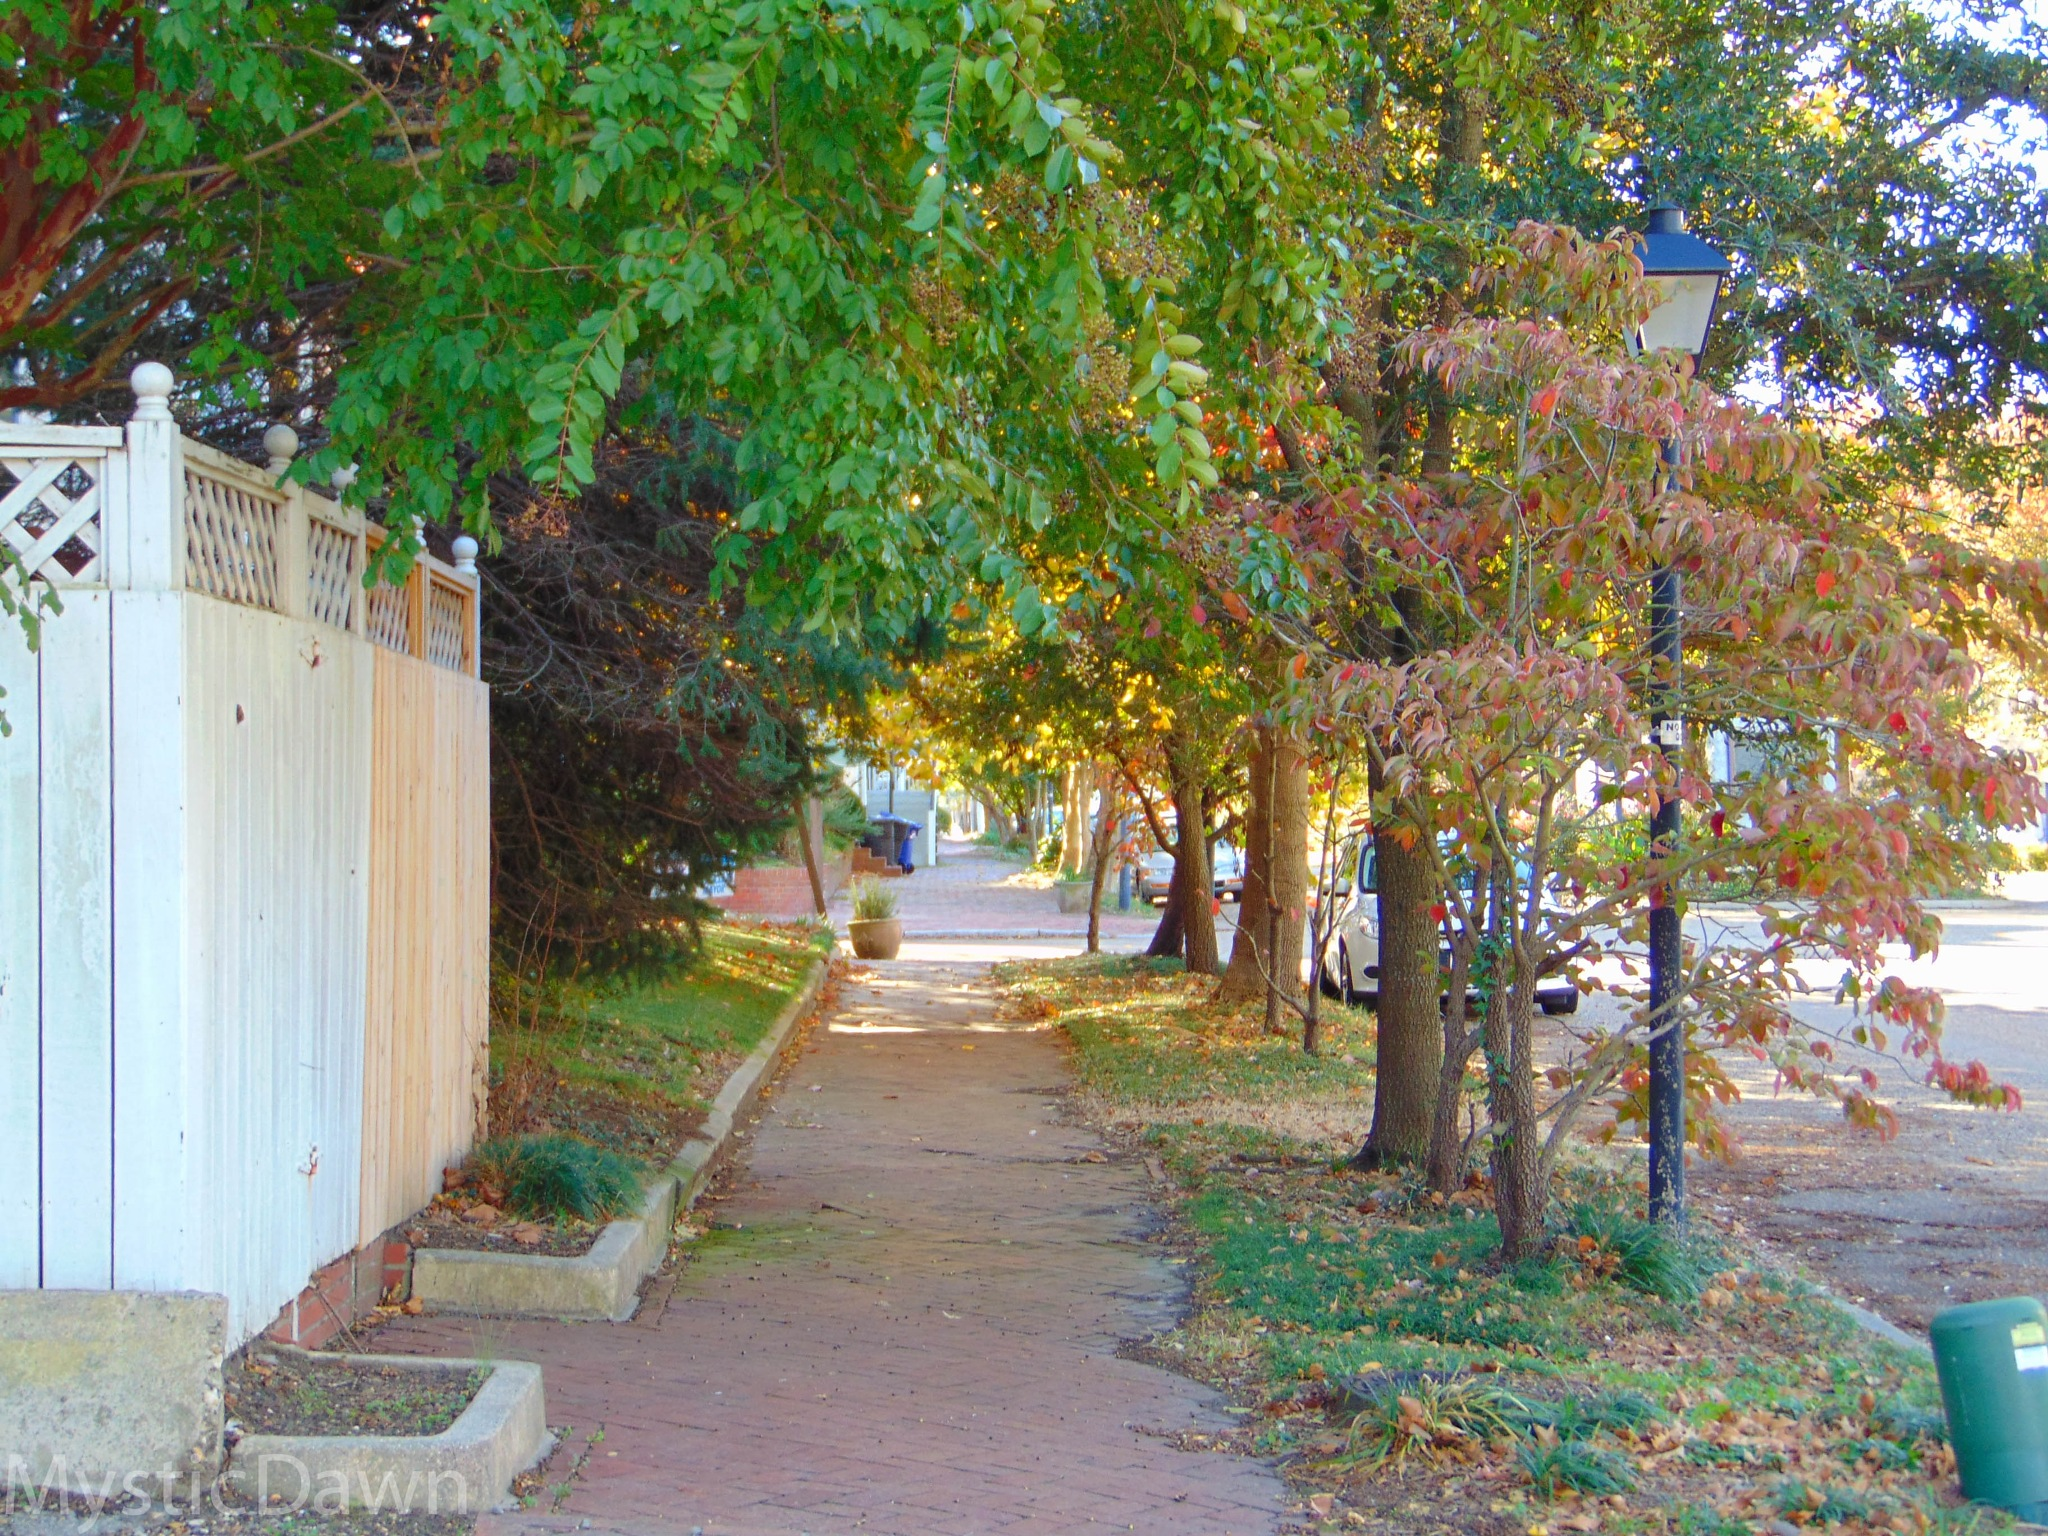 Sidewalk in the fall time by dawnjacksondavenport